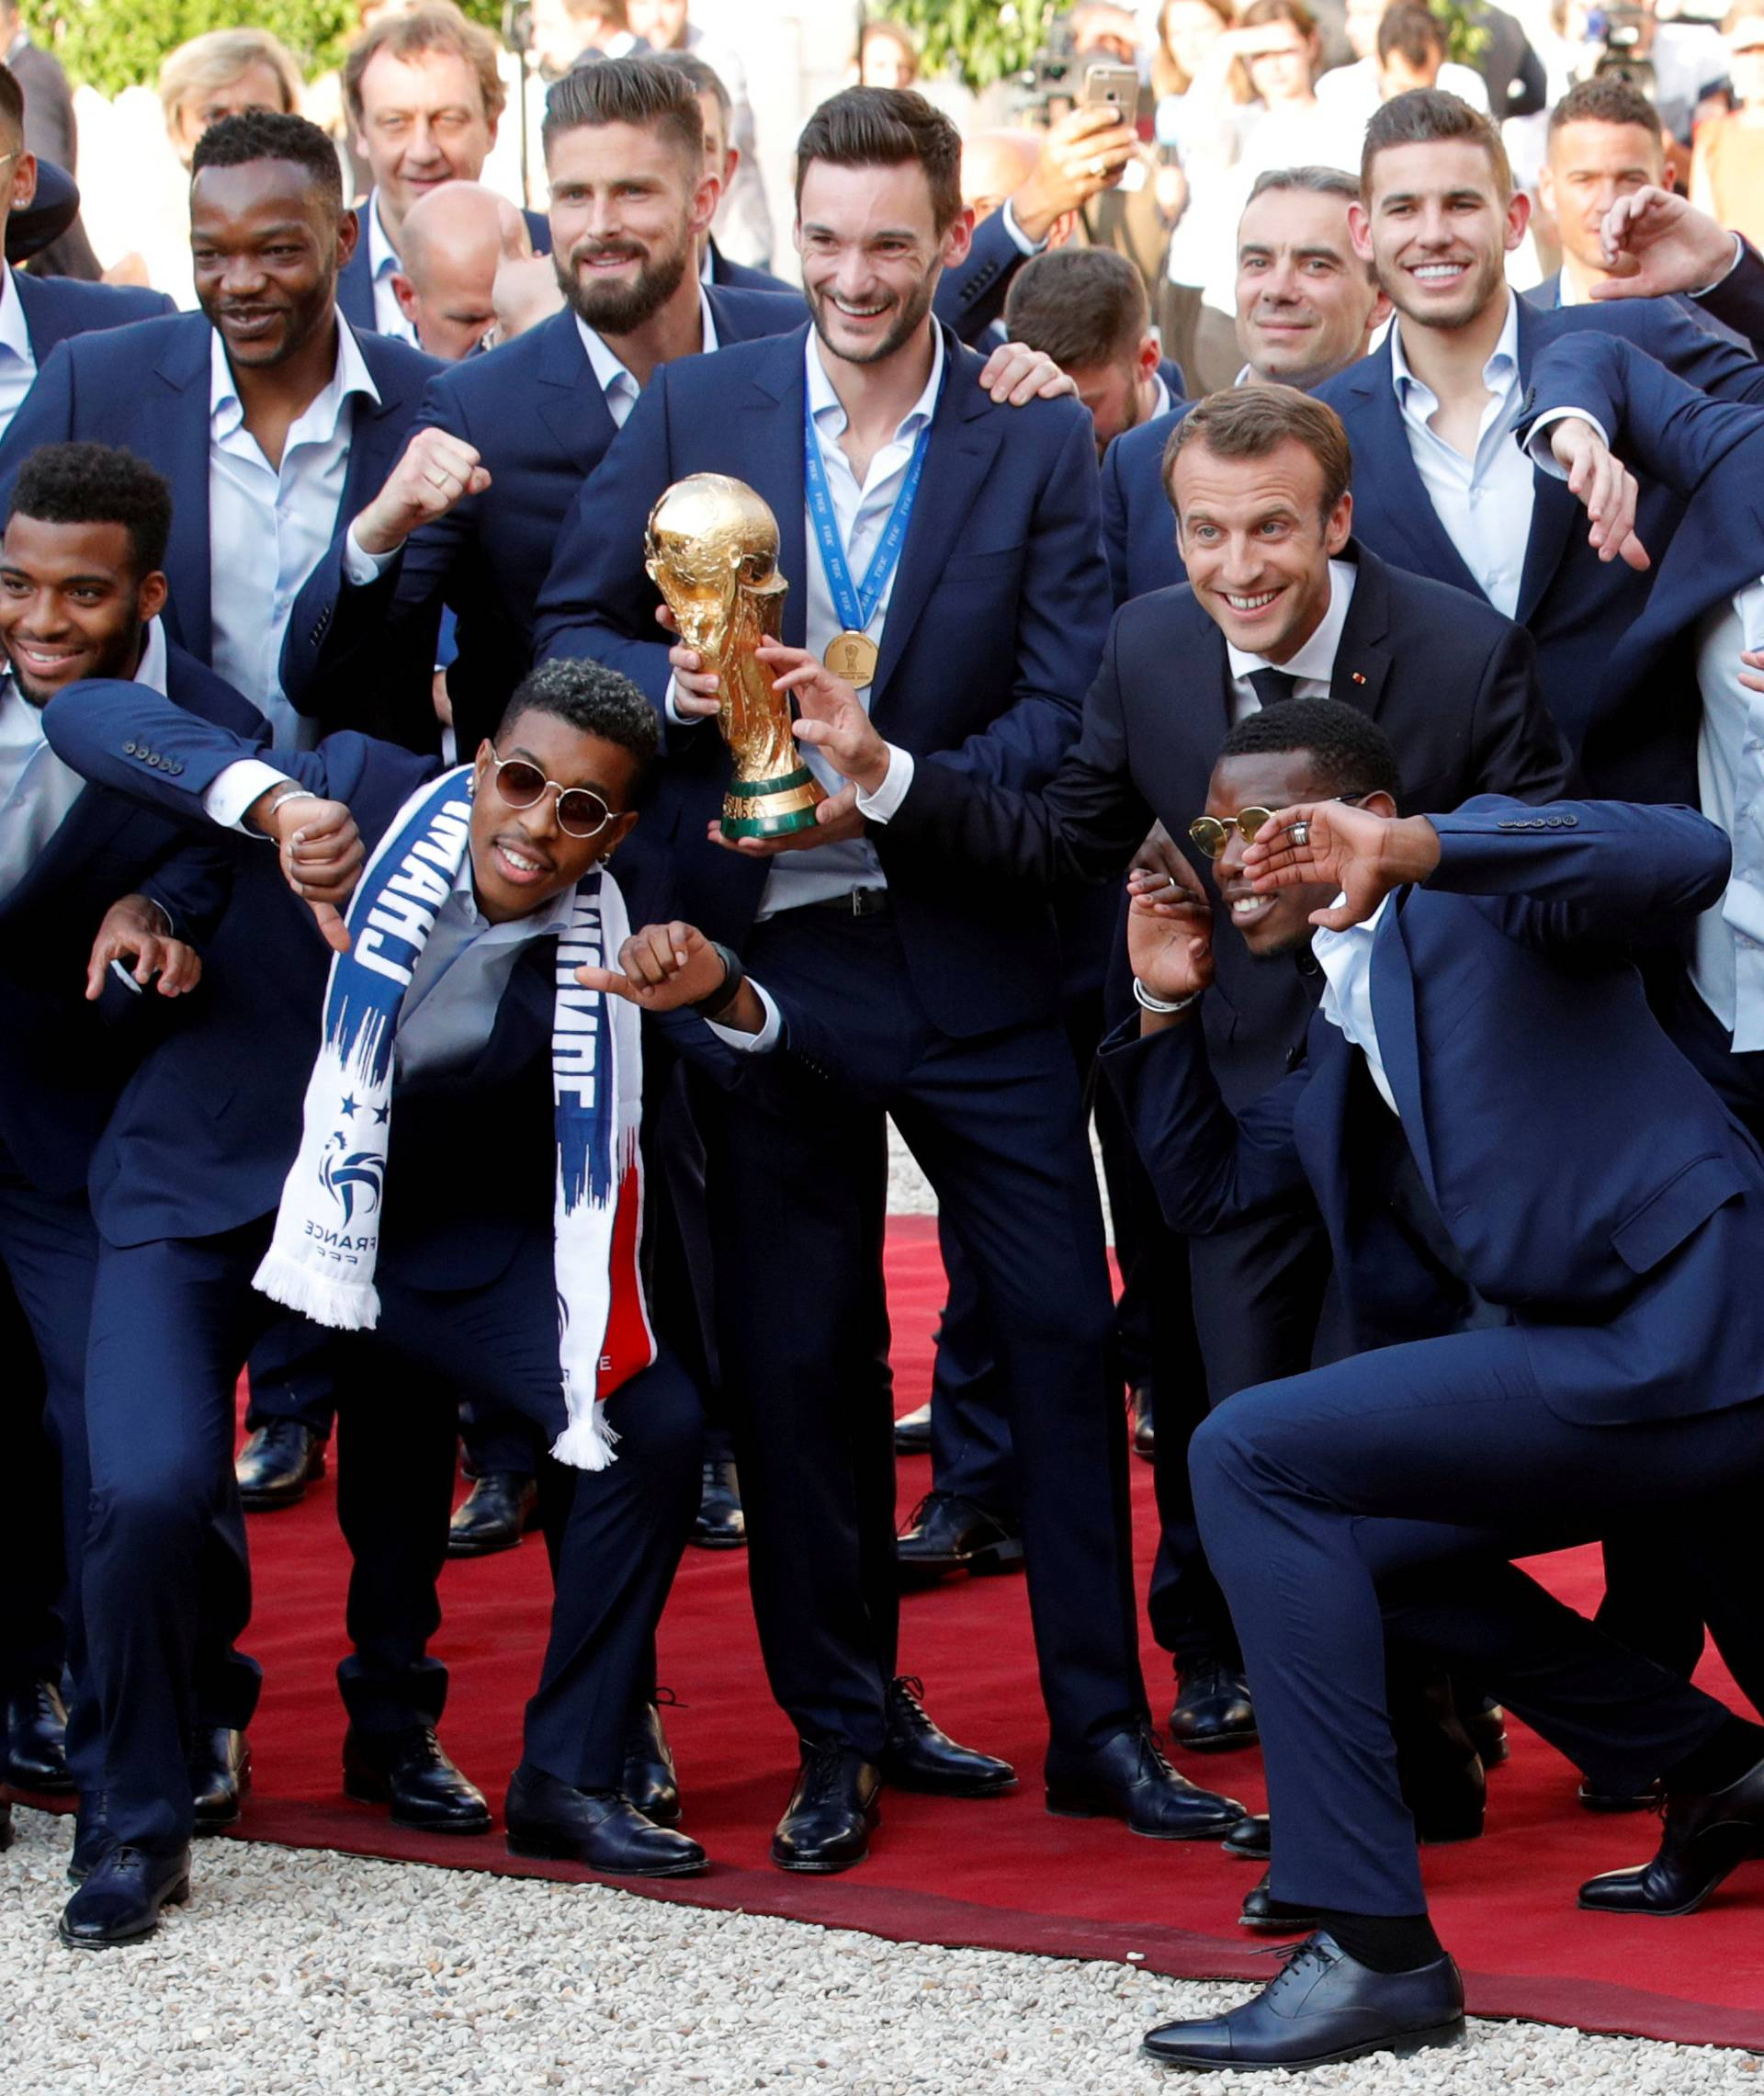 French President Emmanuel Macron and his wife Brigitte Macron pose with France soccer team captain Hugo Lloris holding the trophy, coach Didier Deschamps and players before a reception to honour the France soccer team at the Elysee Palace in Paris